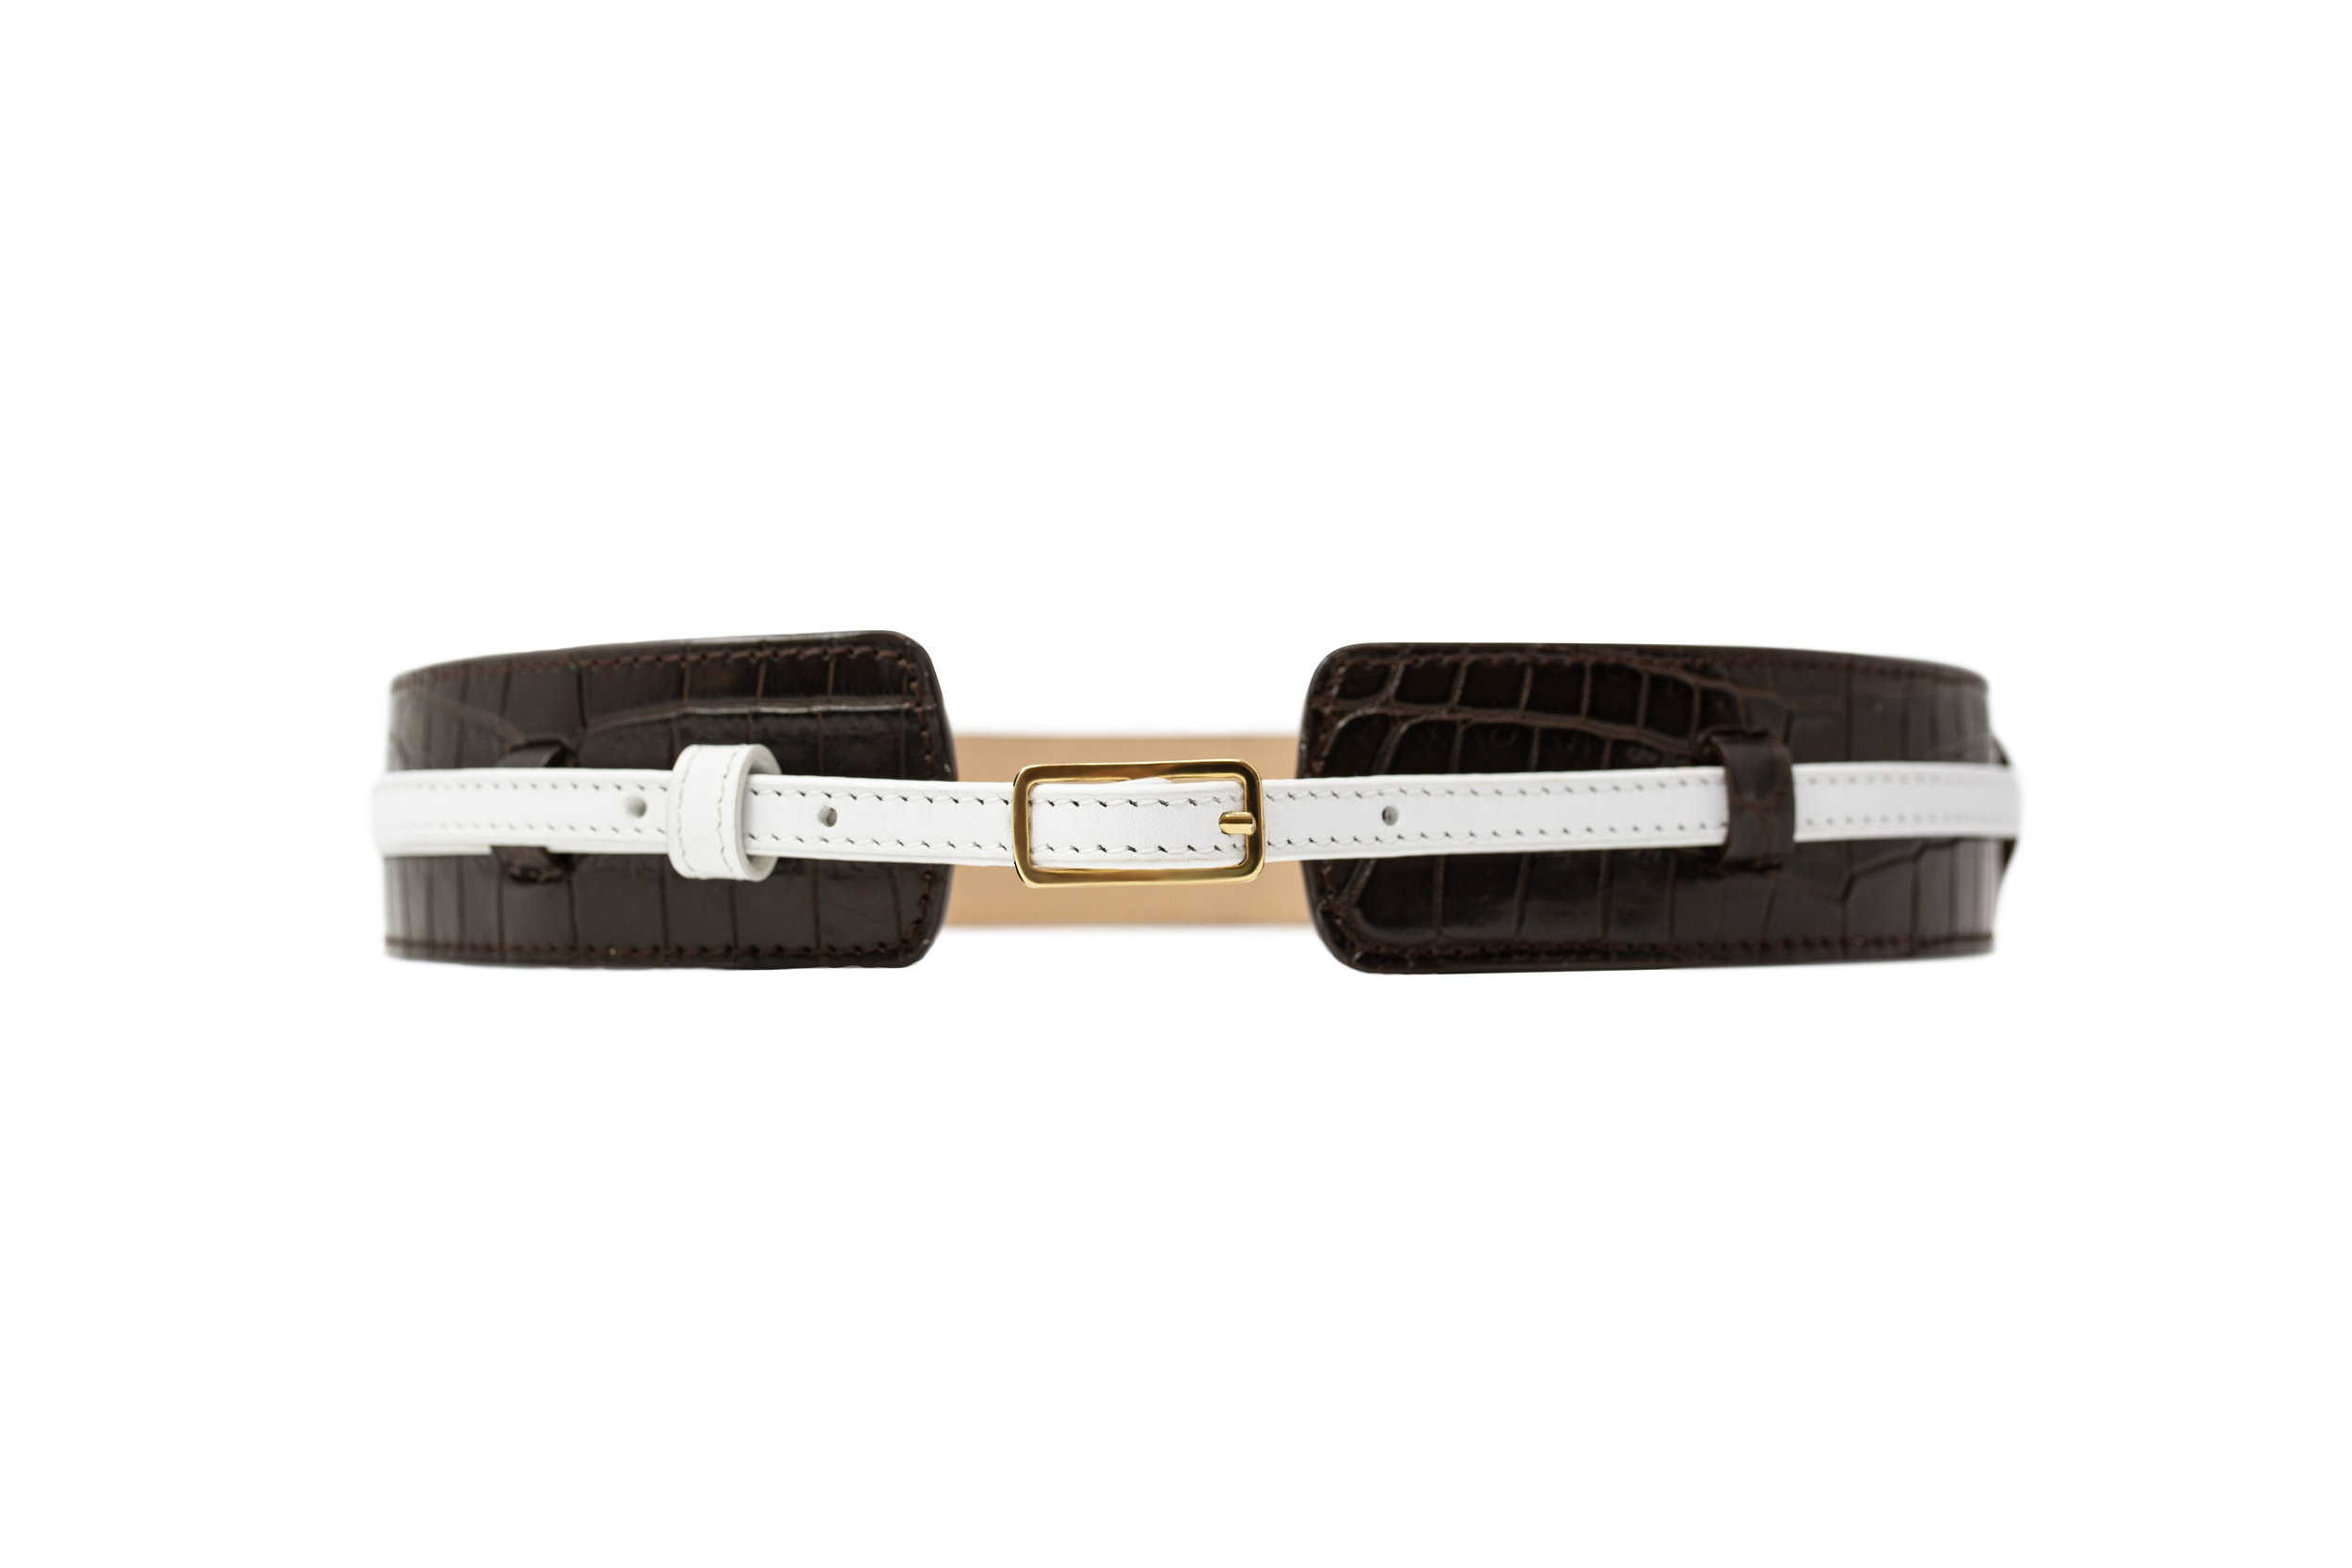 Calie Parese Luxury Crocodile Womens High Waisted Belt in Brown Nile Crocodile and White Nappa Leather